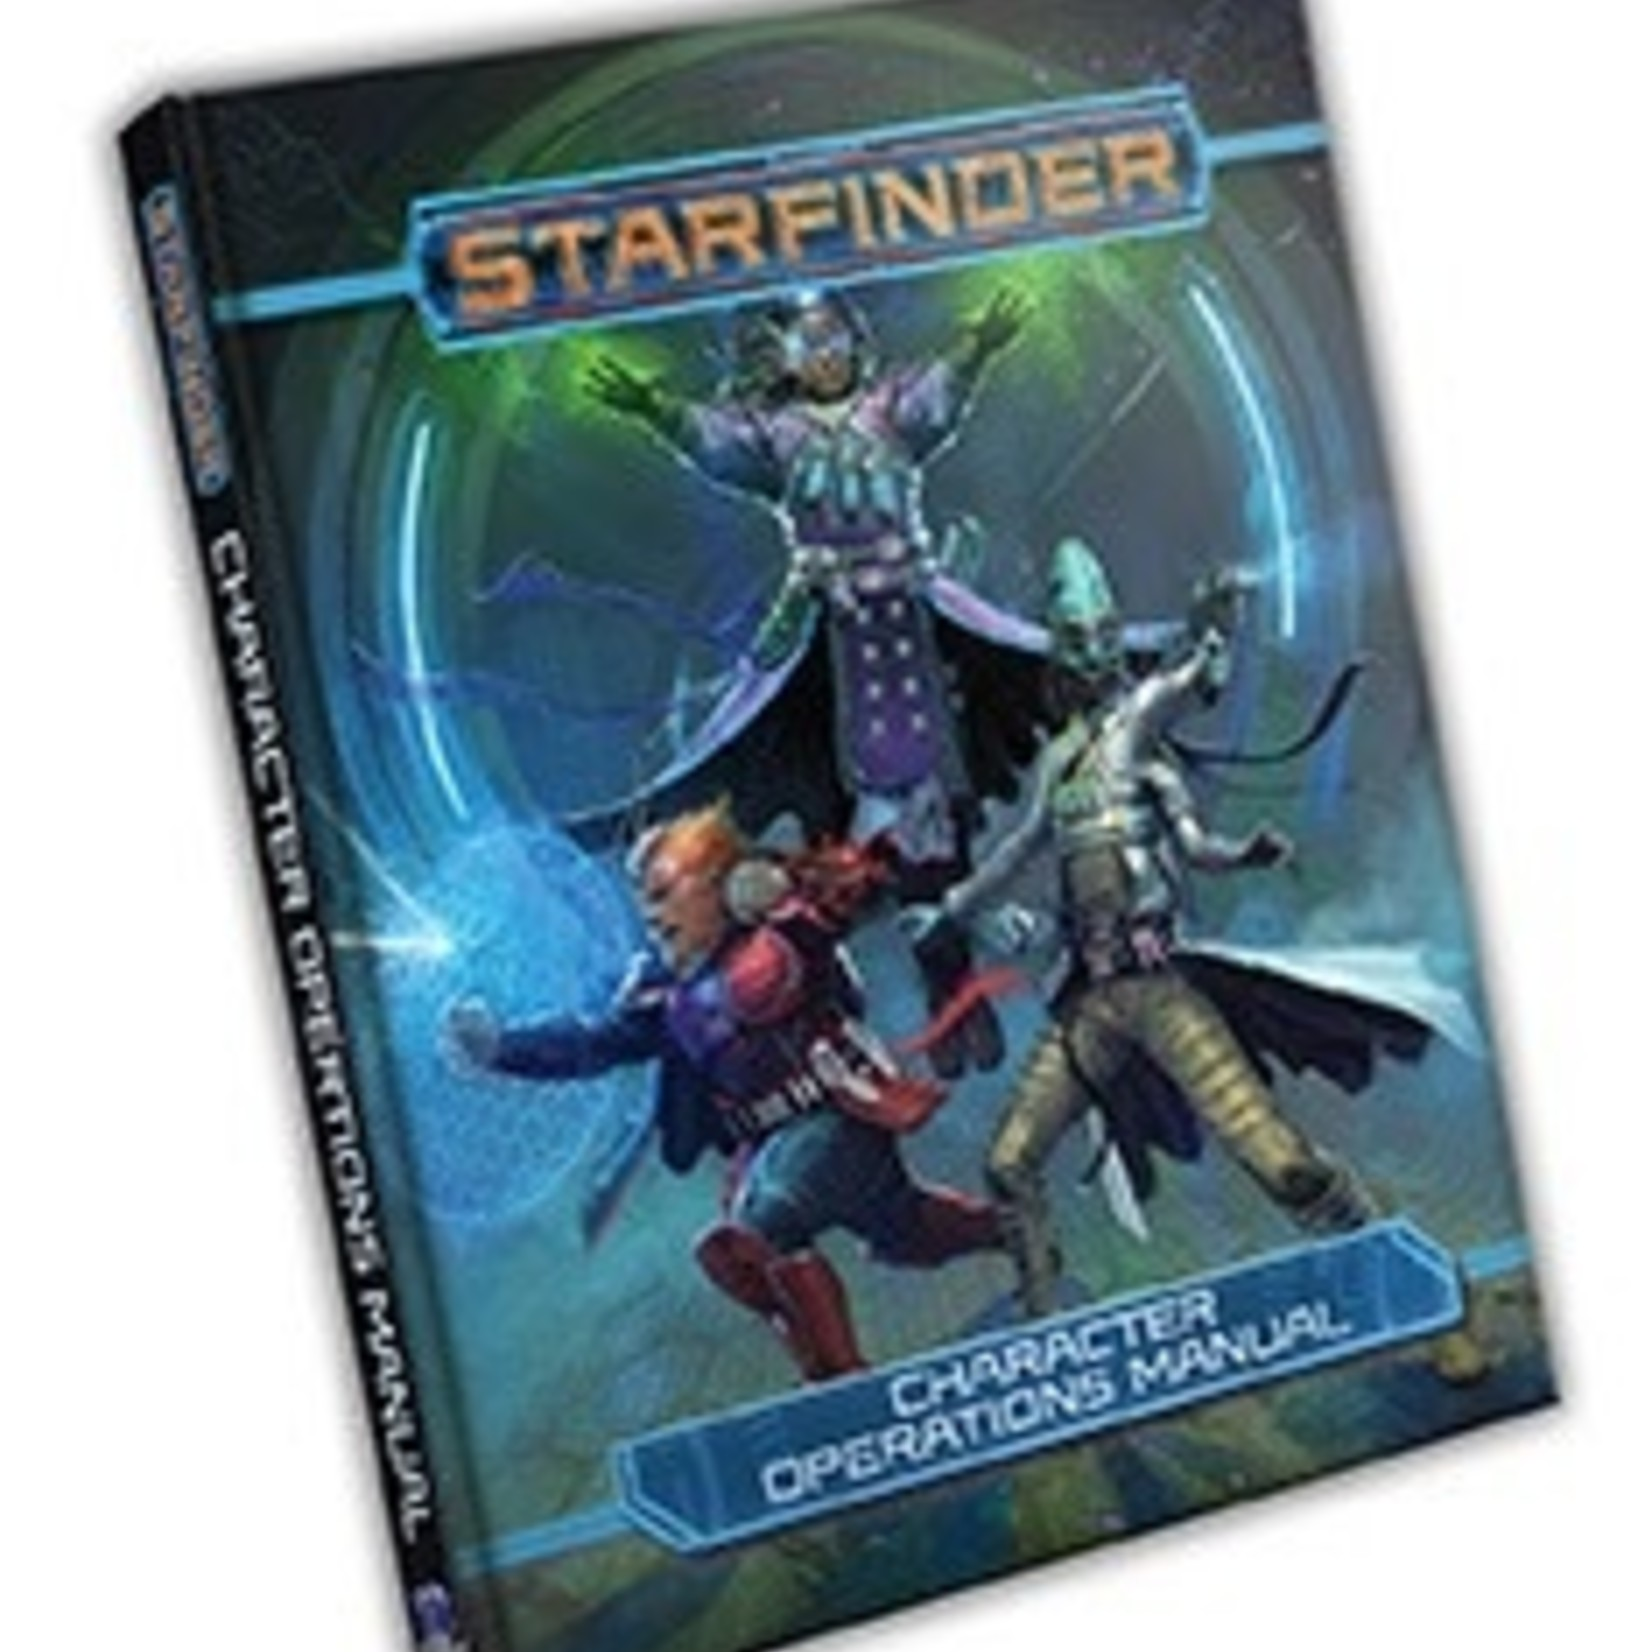 Starfinder Character Operations Manual